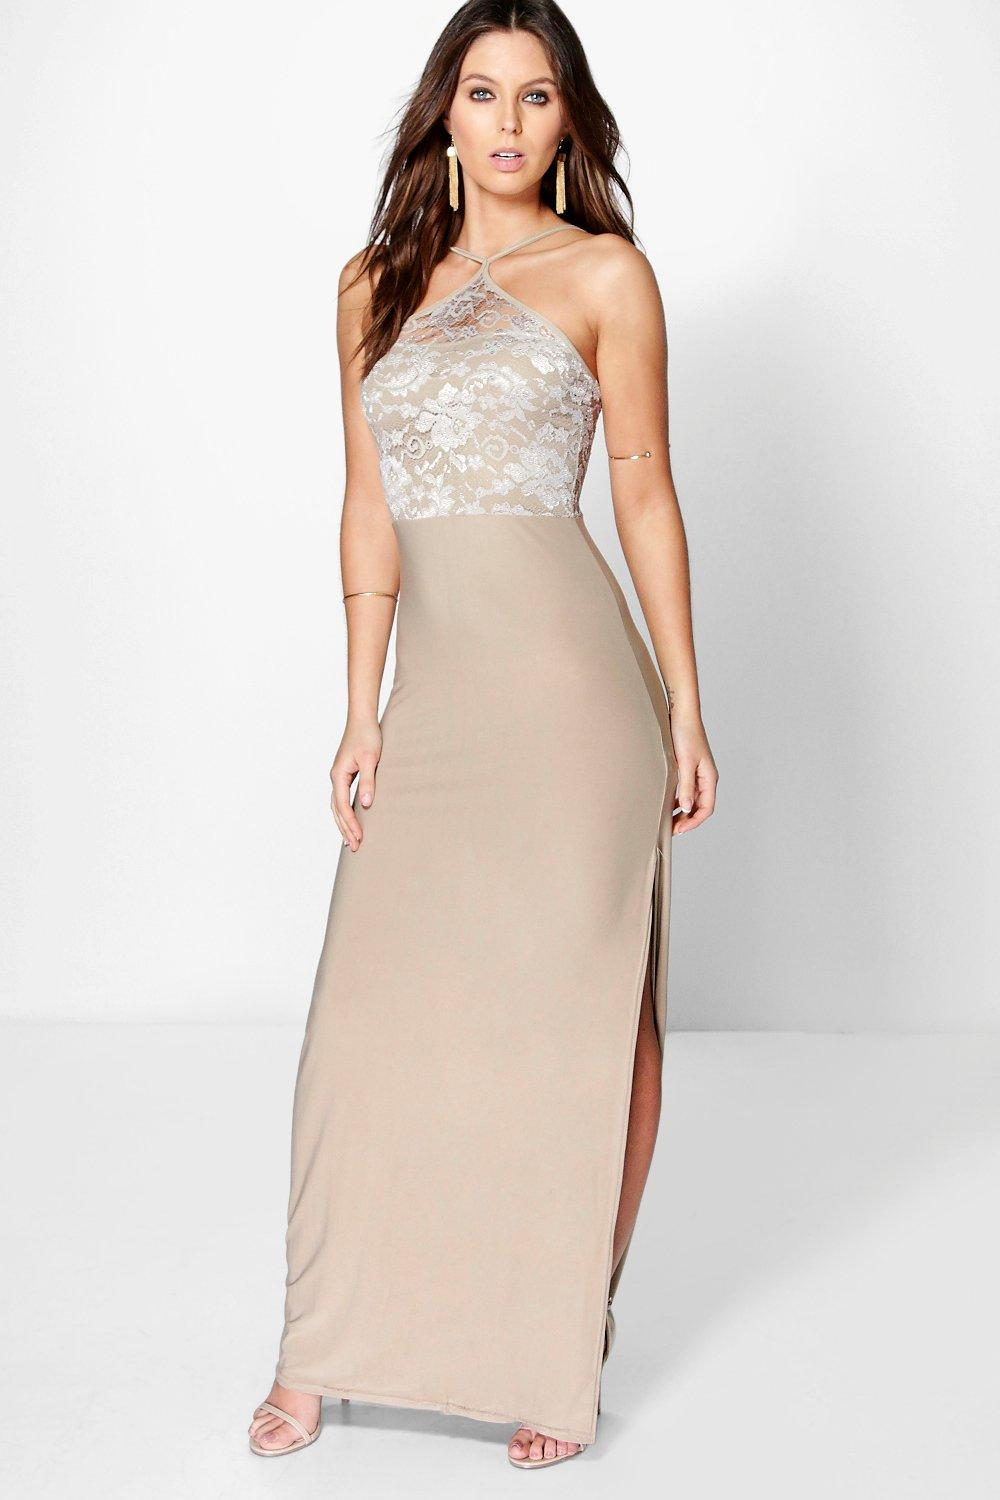 May Lace Slinky Strappy Halterneck Maxi Dress